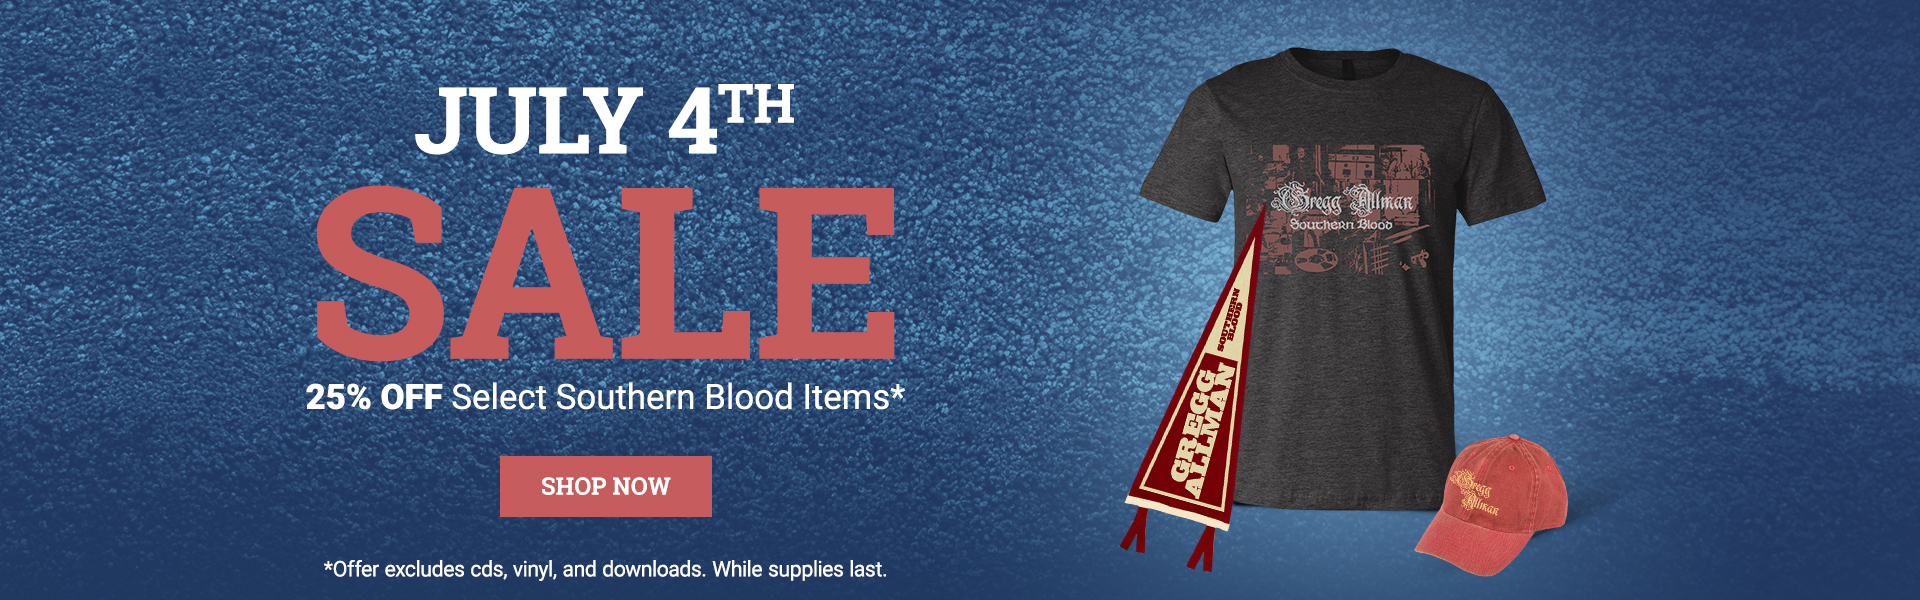 25% Off Select Southern Blood Items